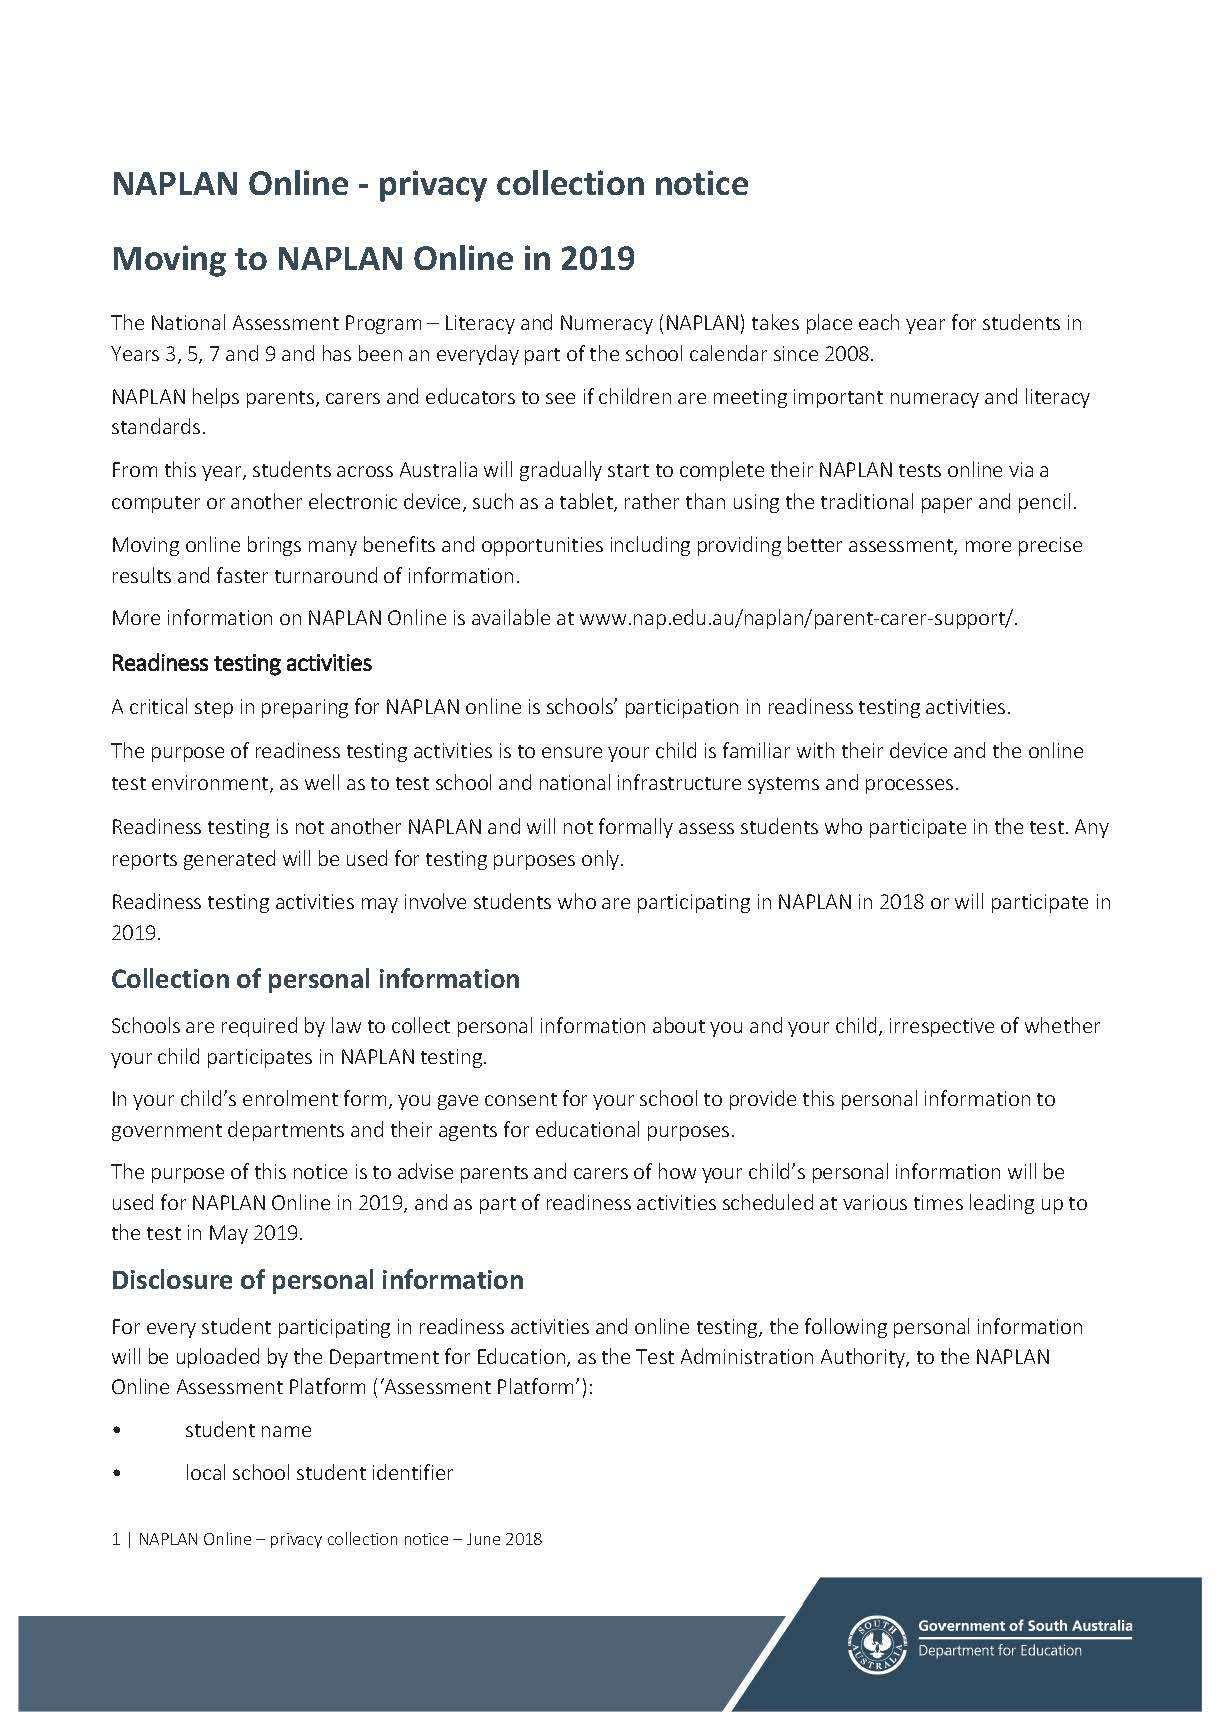 2019_naplan-online-privacy-collection-notice (003)_Page_1.jpg